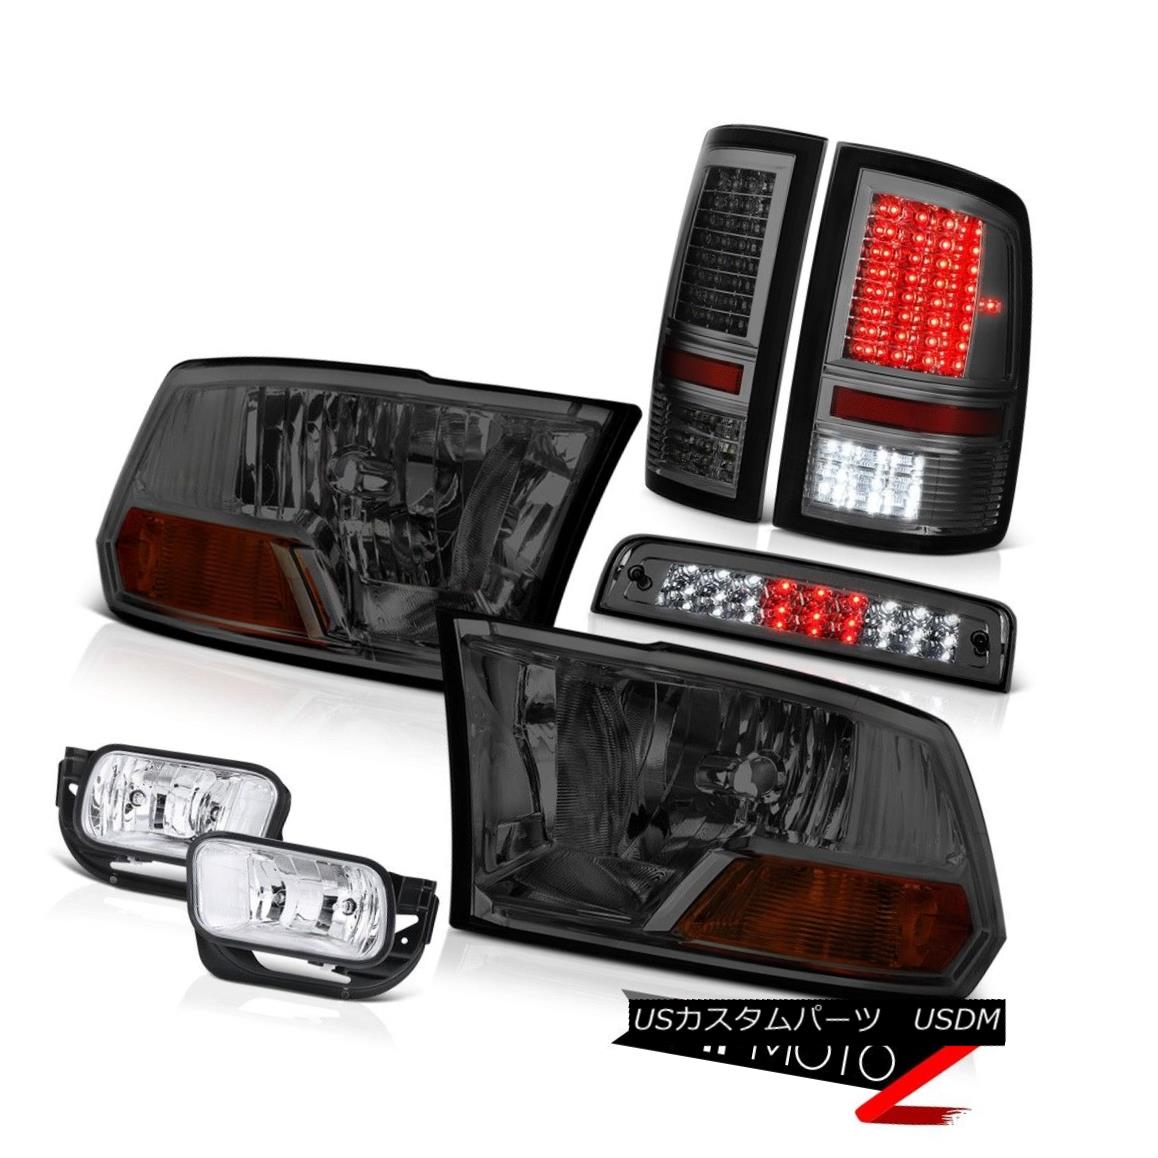 テールライト 2010-2018 Ram 3500 5.7L Tail Lights Chrome Foglights Roof Cab Light Headlights 2010-2018 Ram 3500 5.7LテールライトChrome Foglightsルーフキャブライトヘッドライト